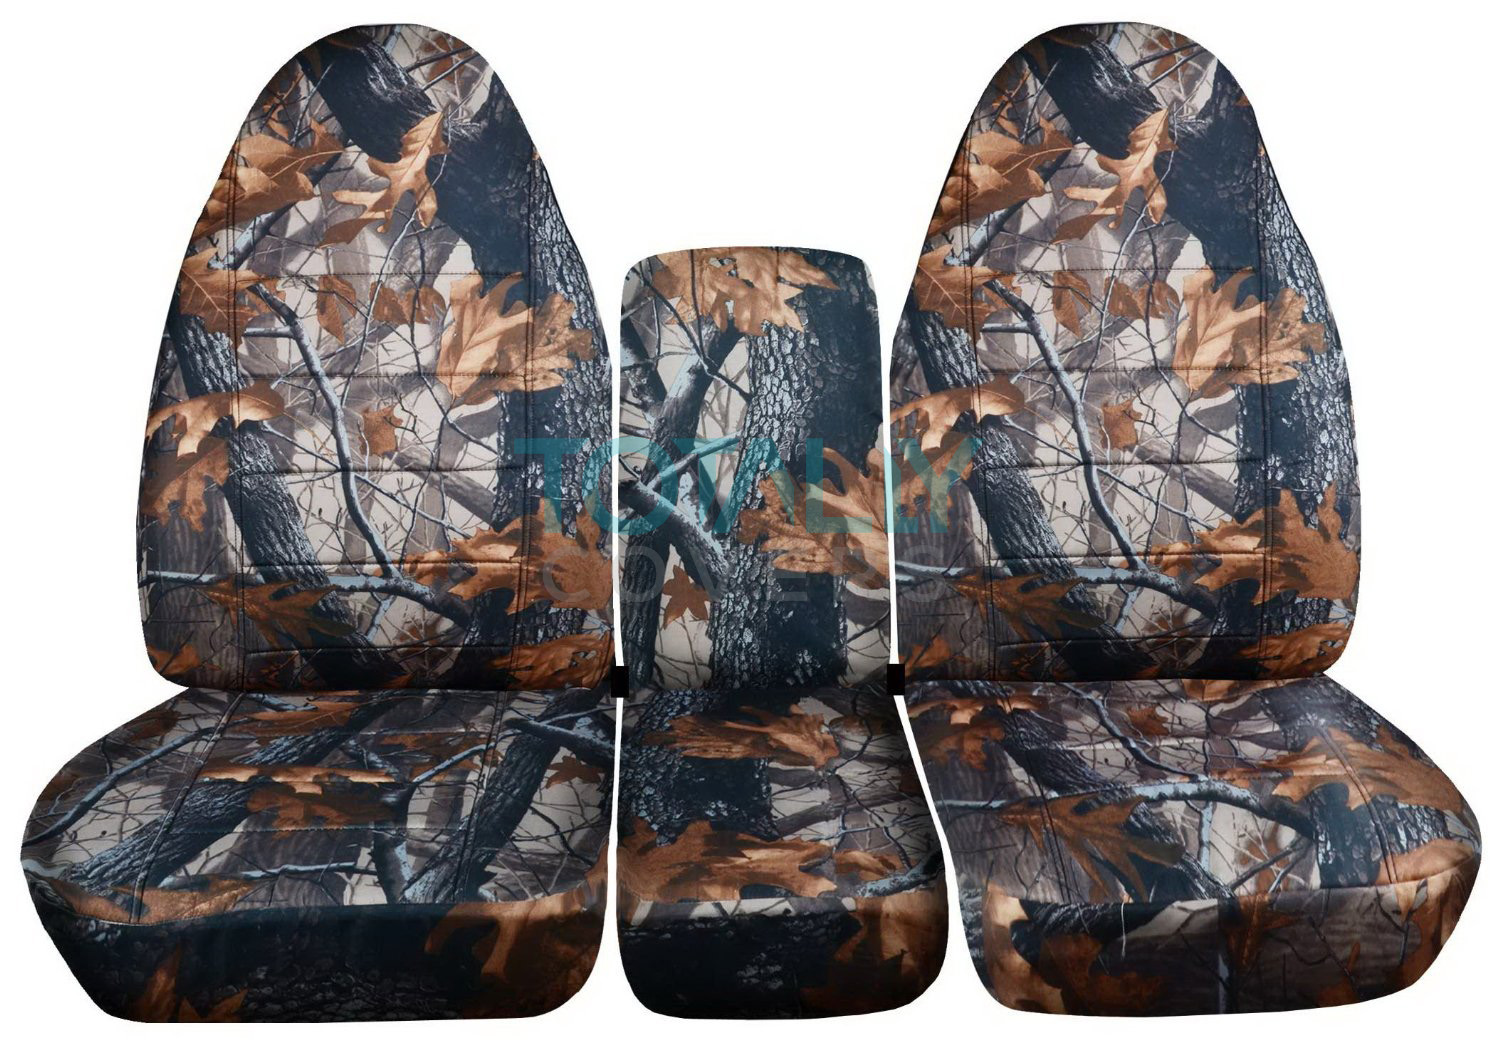 seat 40 dodge ram covers camo 1994 2002 tree real ford bench truck gray console split series 1993 1998 armrest